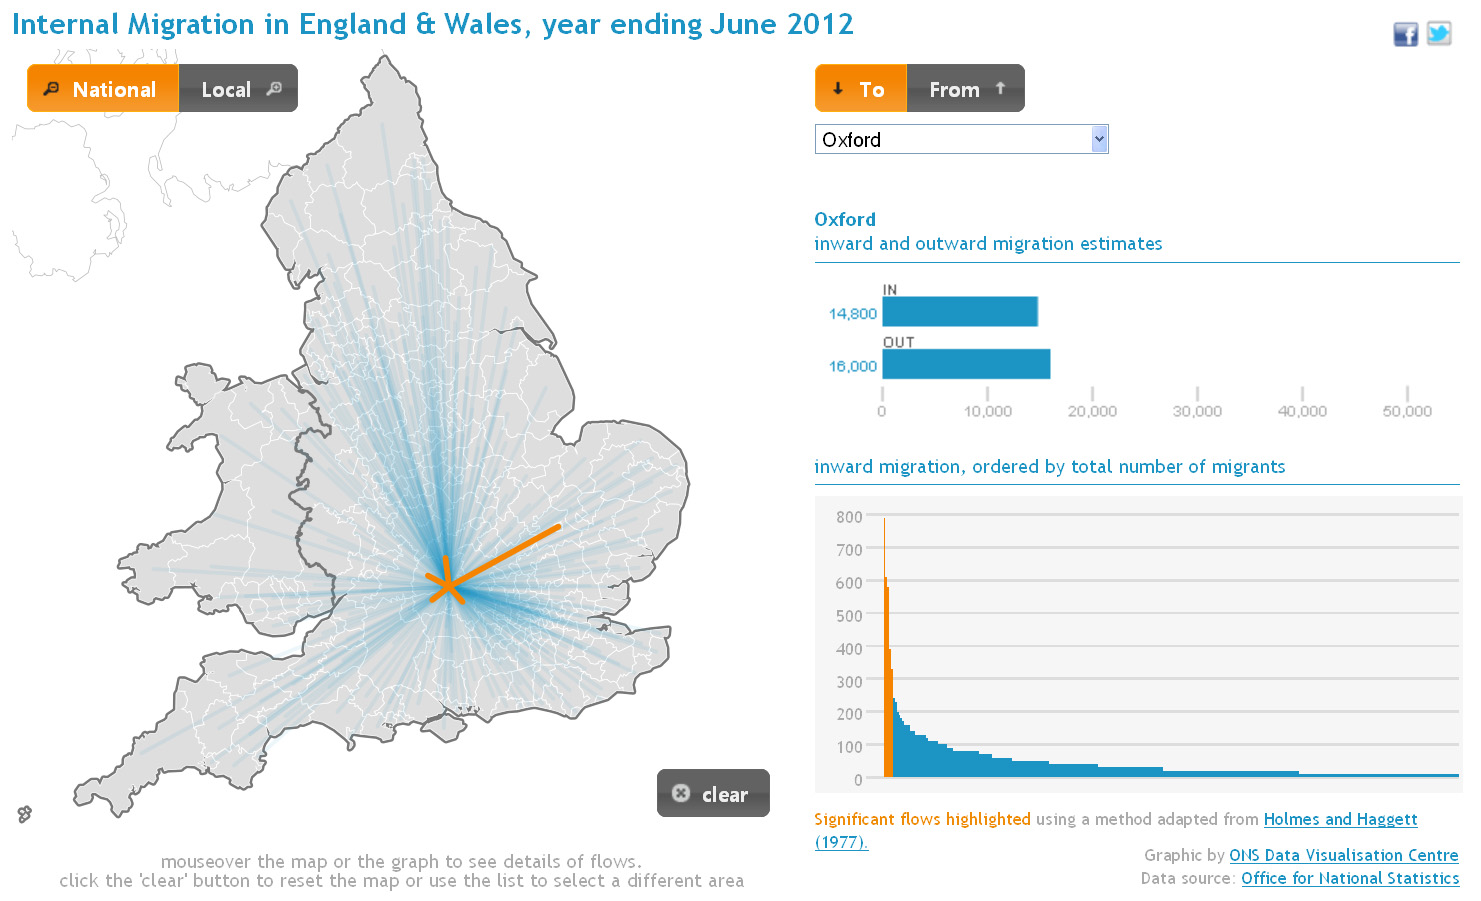 Internal Migration in England and Wales, year ending 2012 interactive map